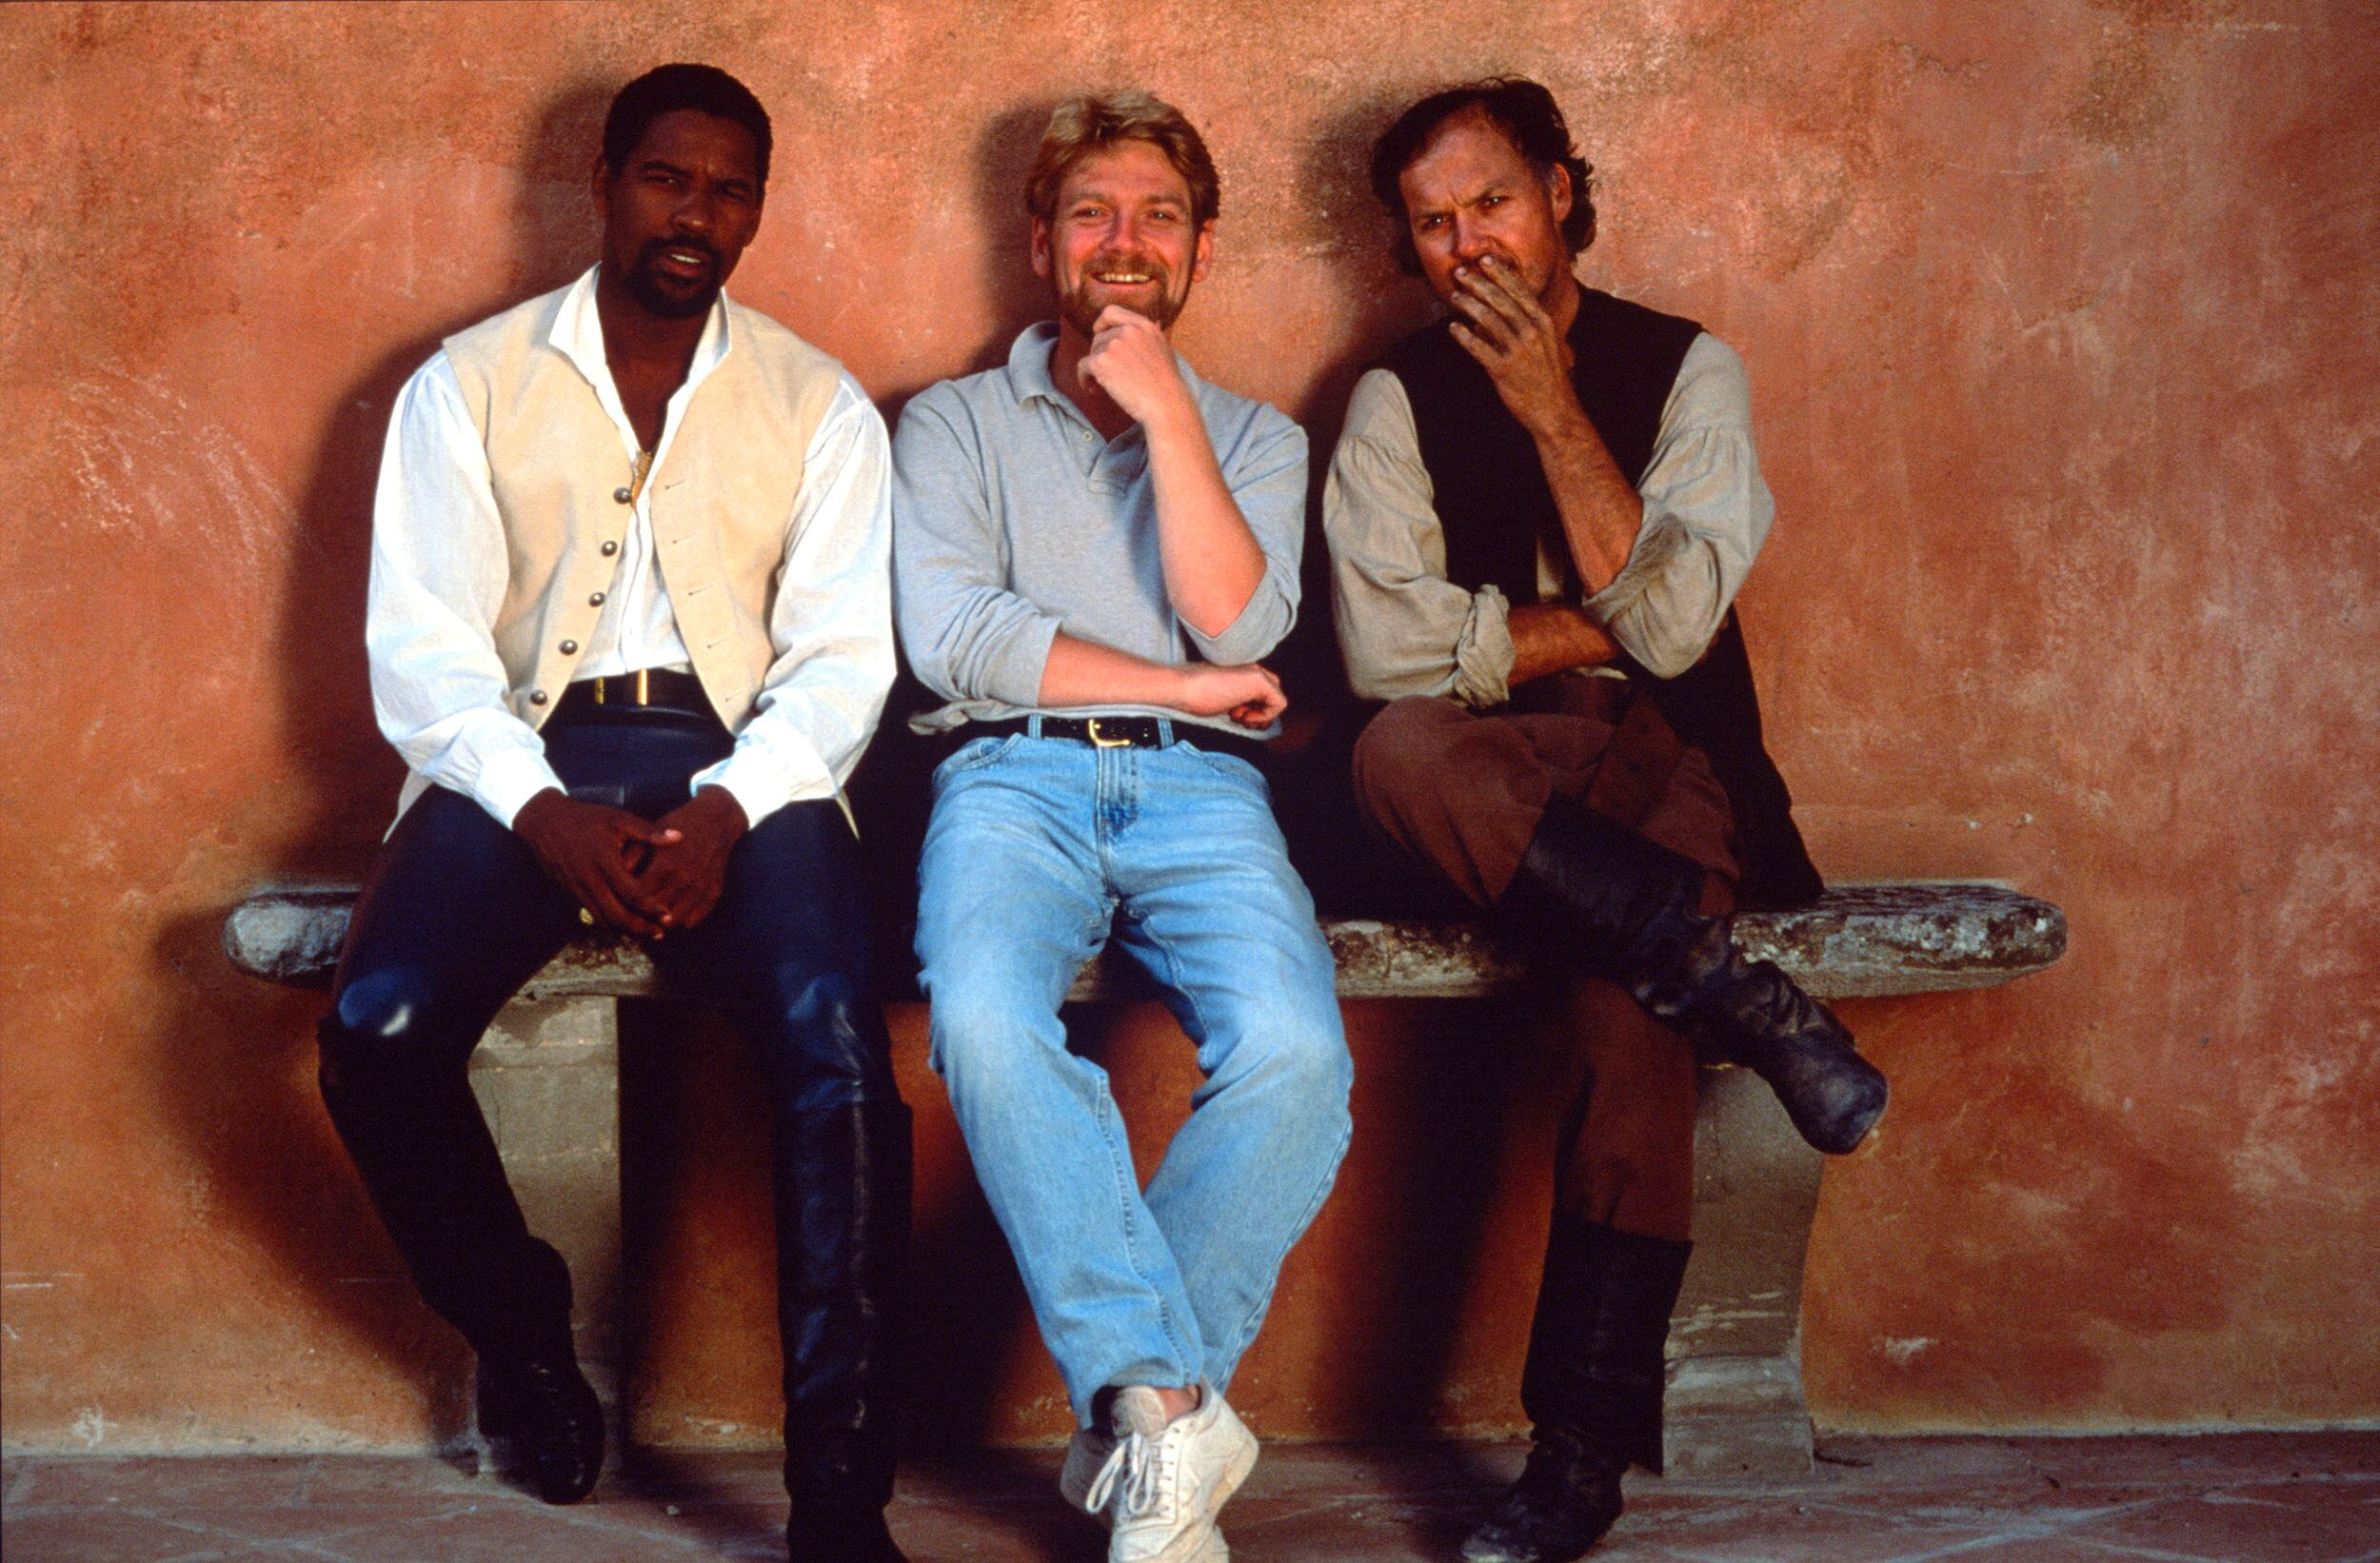 Denzel Washington, Kenneth Branagh, Michael Keaton